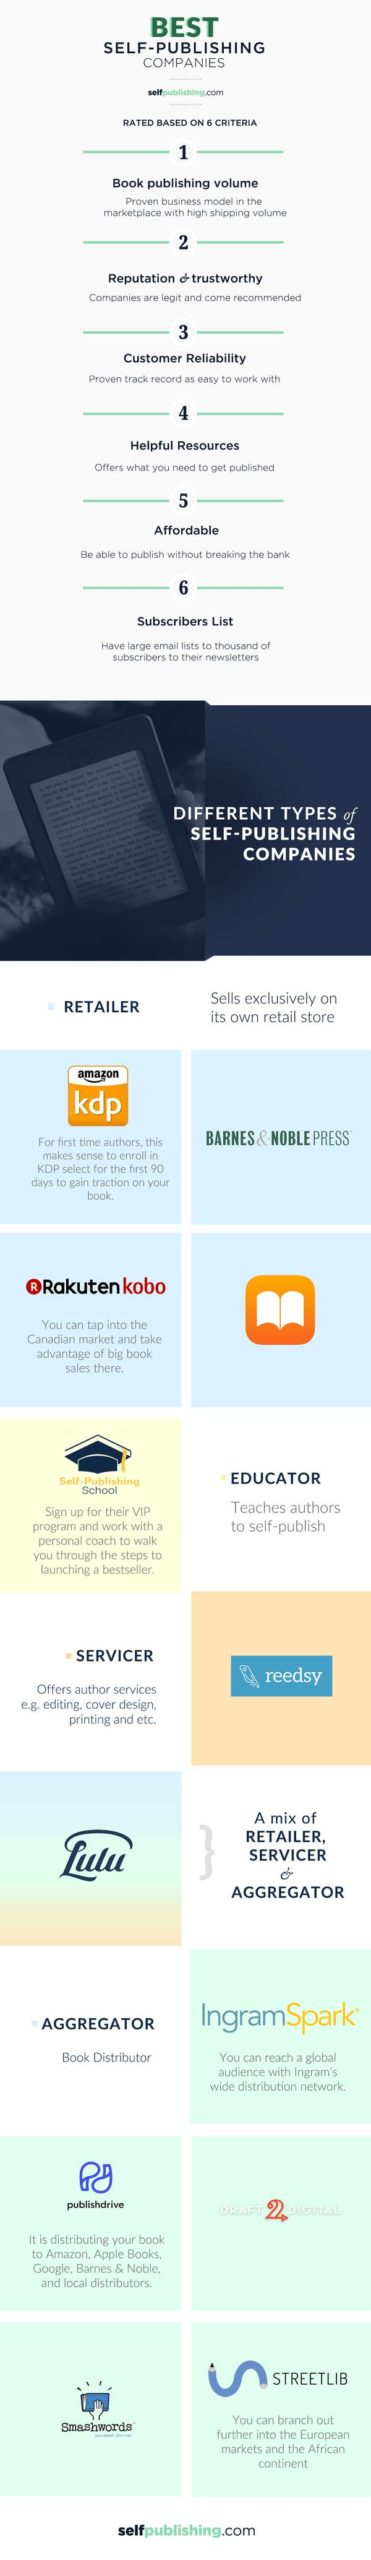 self publishing companies infograph